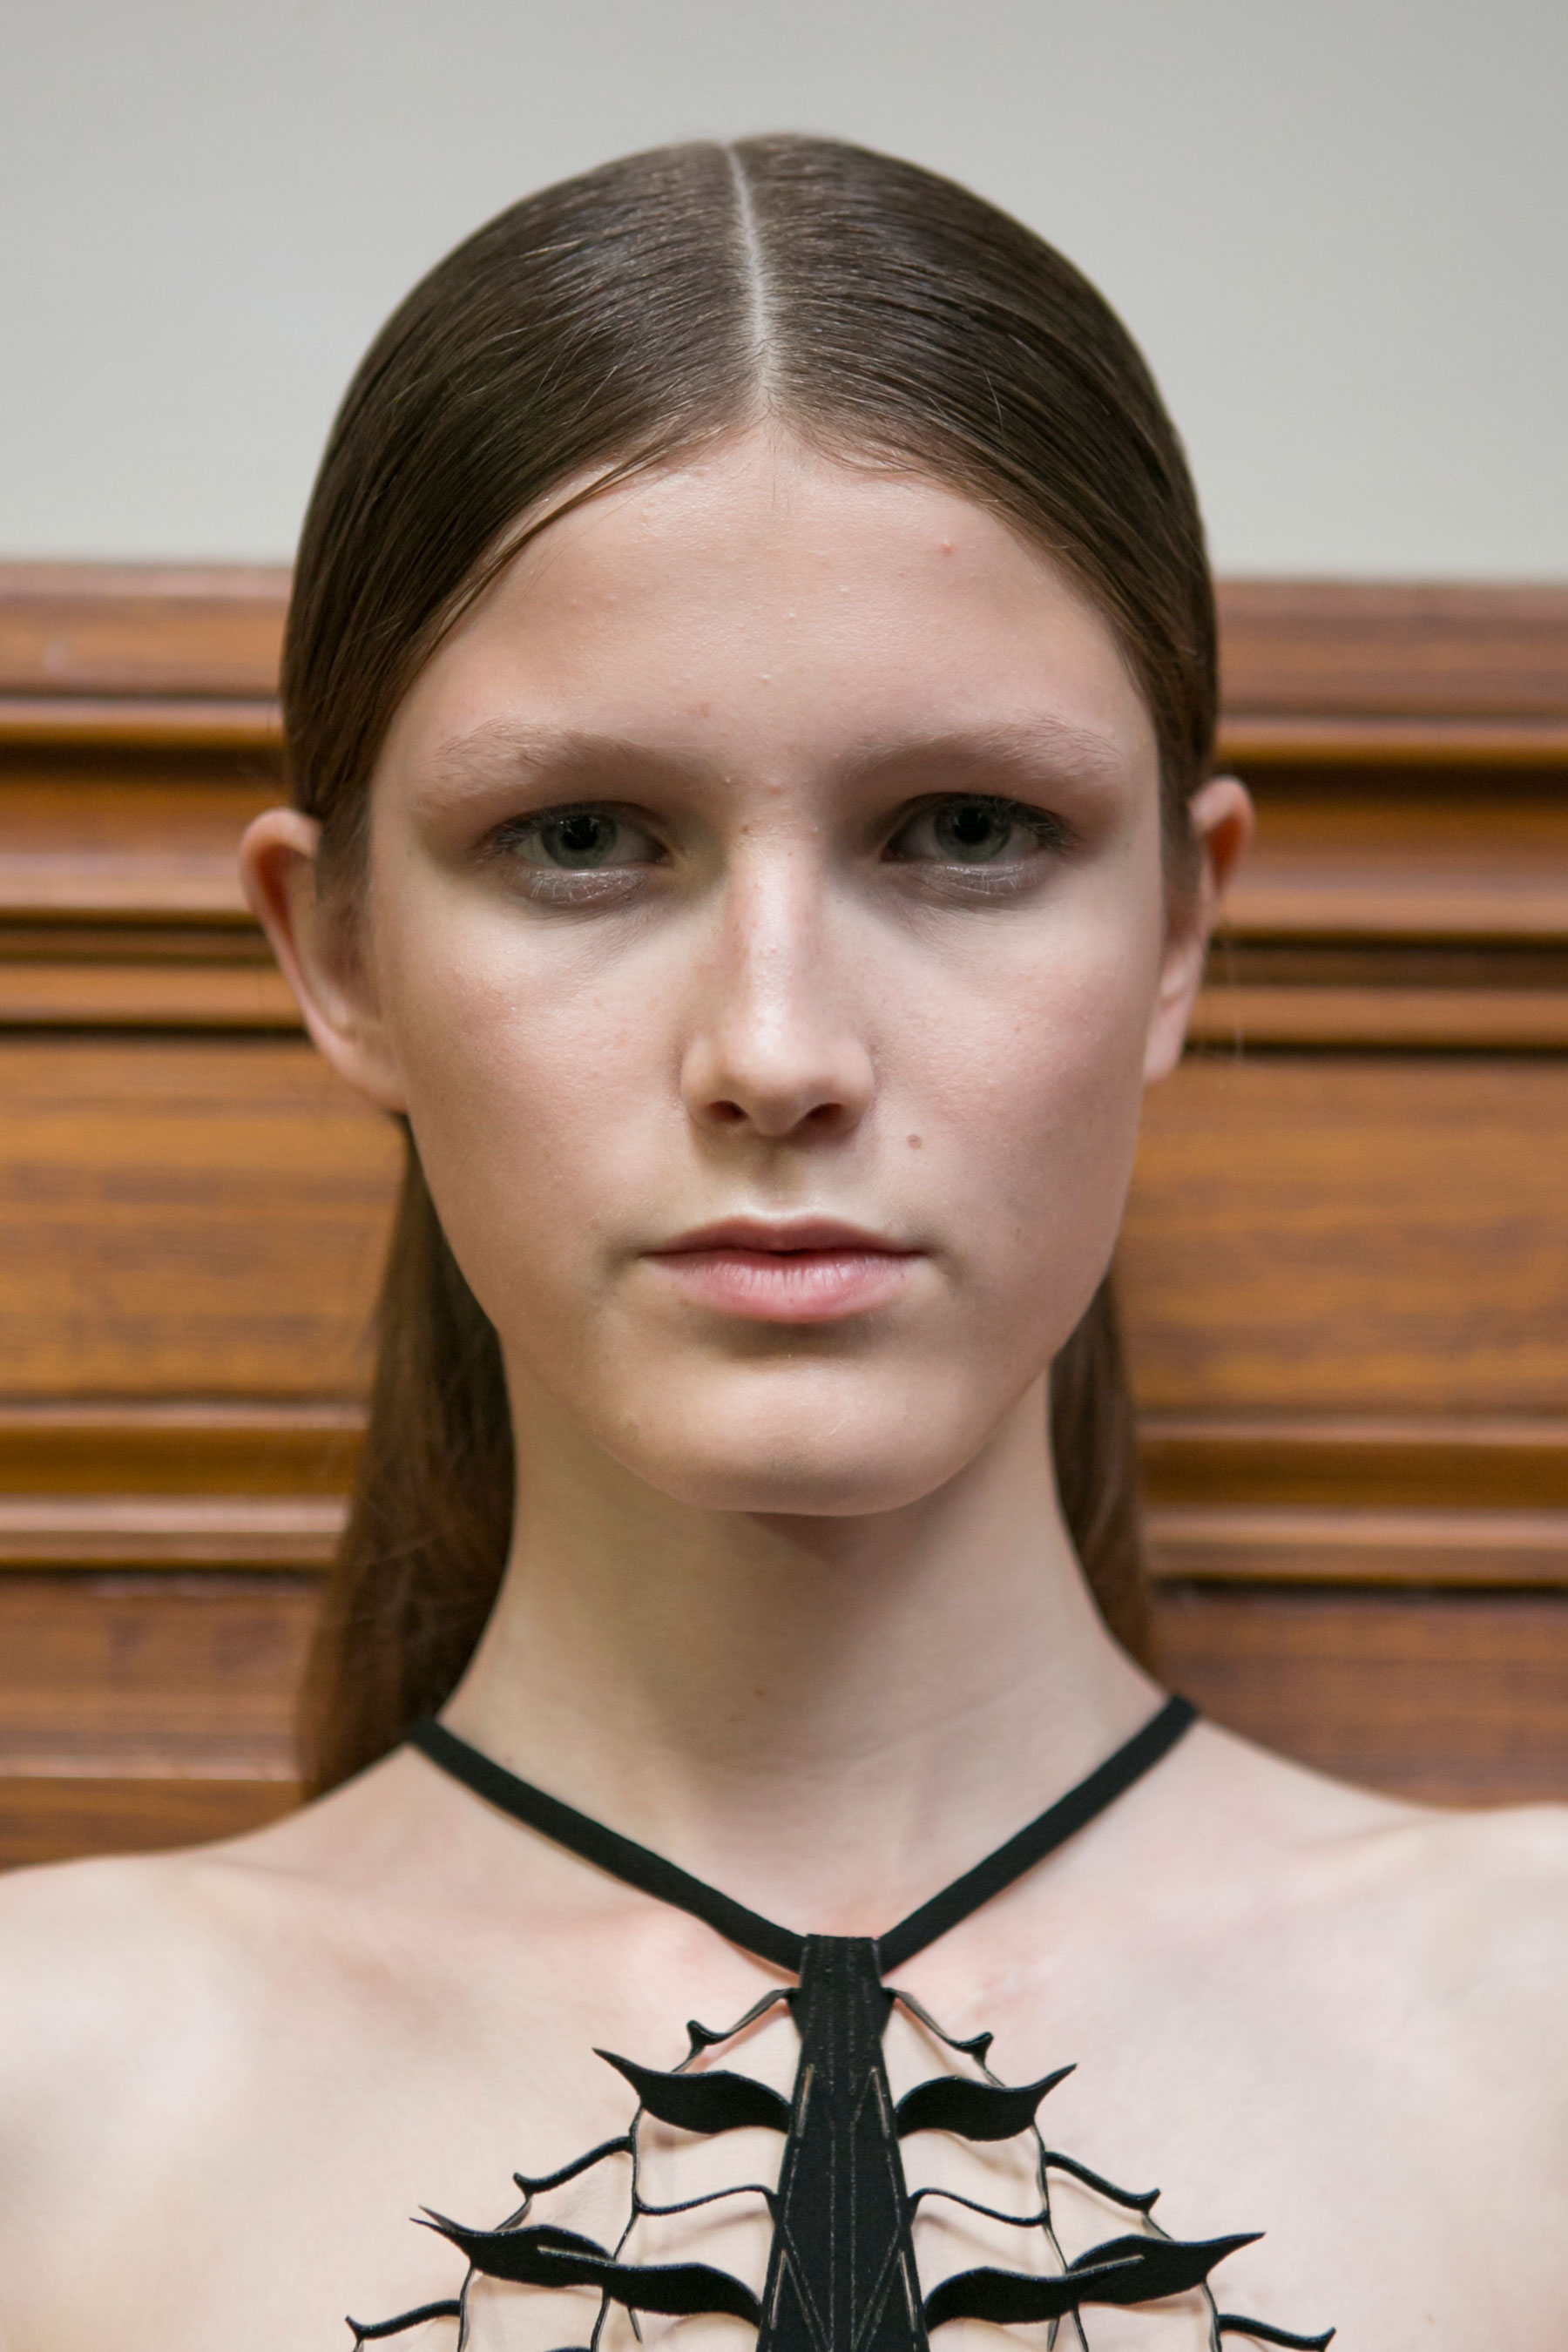 Iris-van-Herpen-spring-2016-beauty-fashion-show-the-impression-18